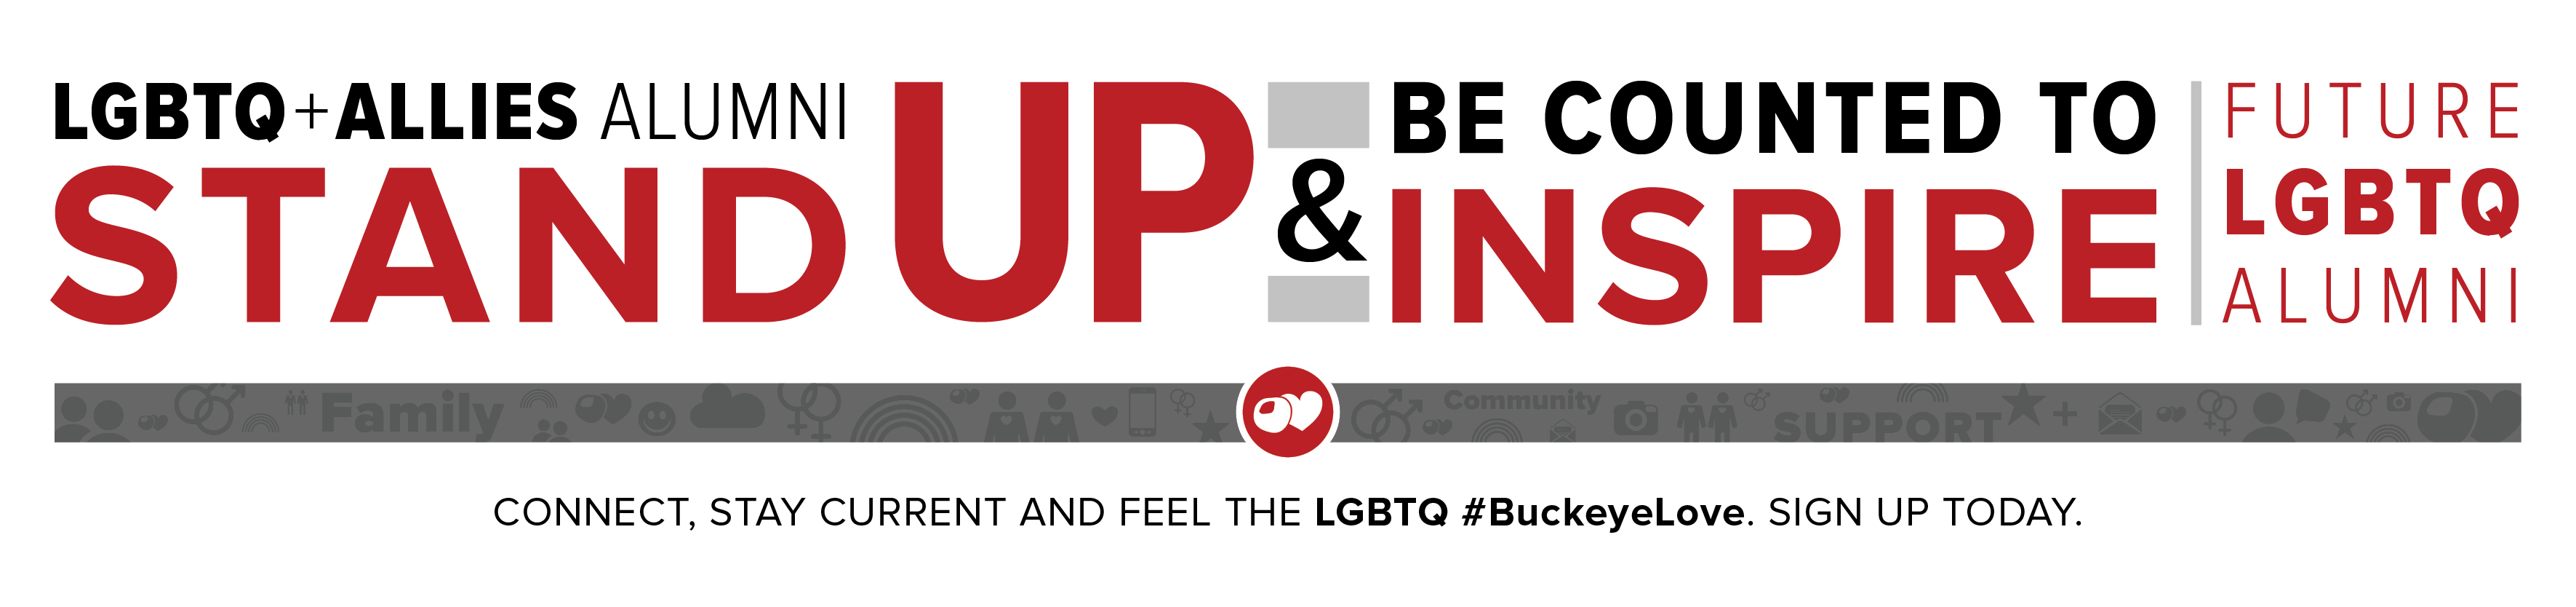 LGBTQ and allies alumni: Stand up and be counted to inspire future LGBTQ alumni